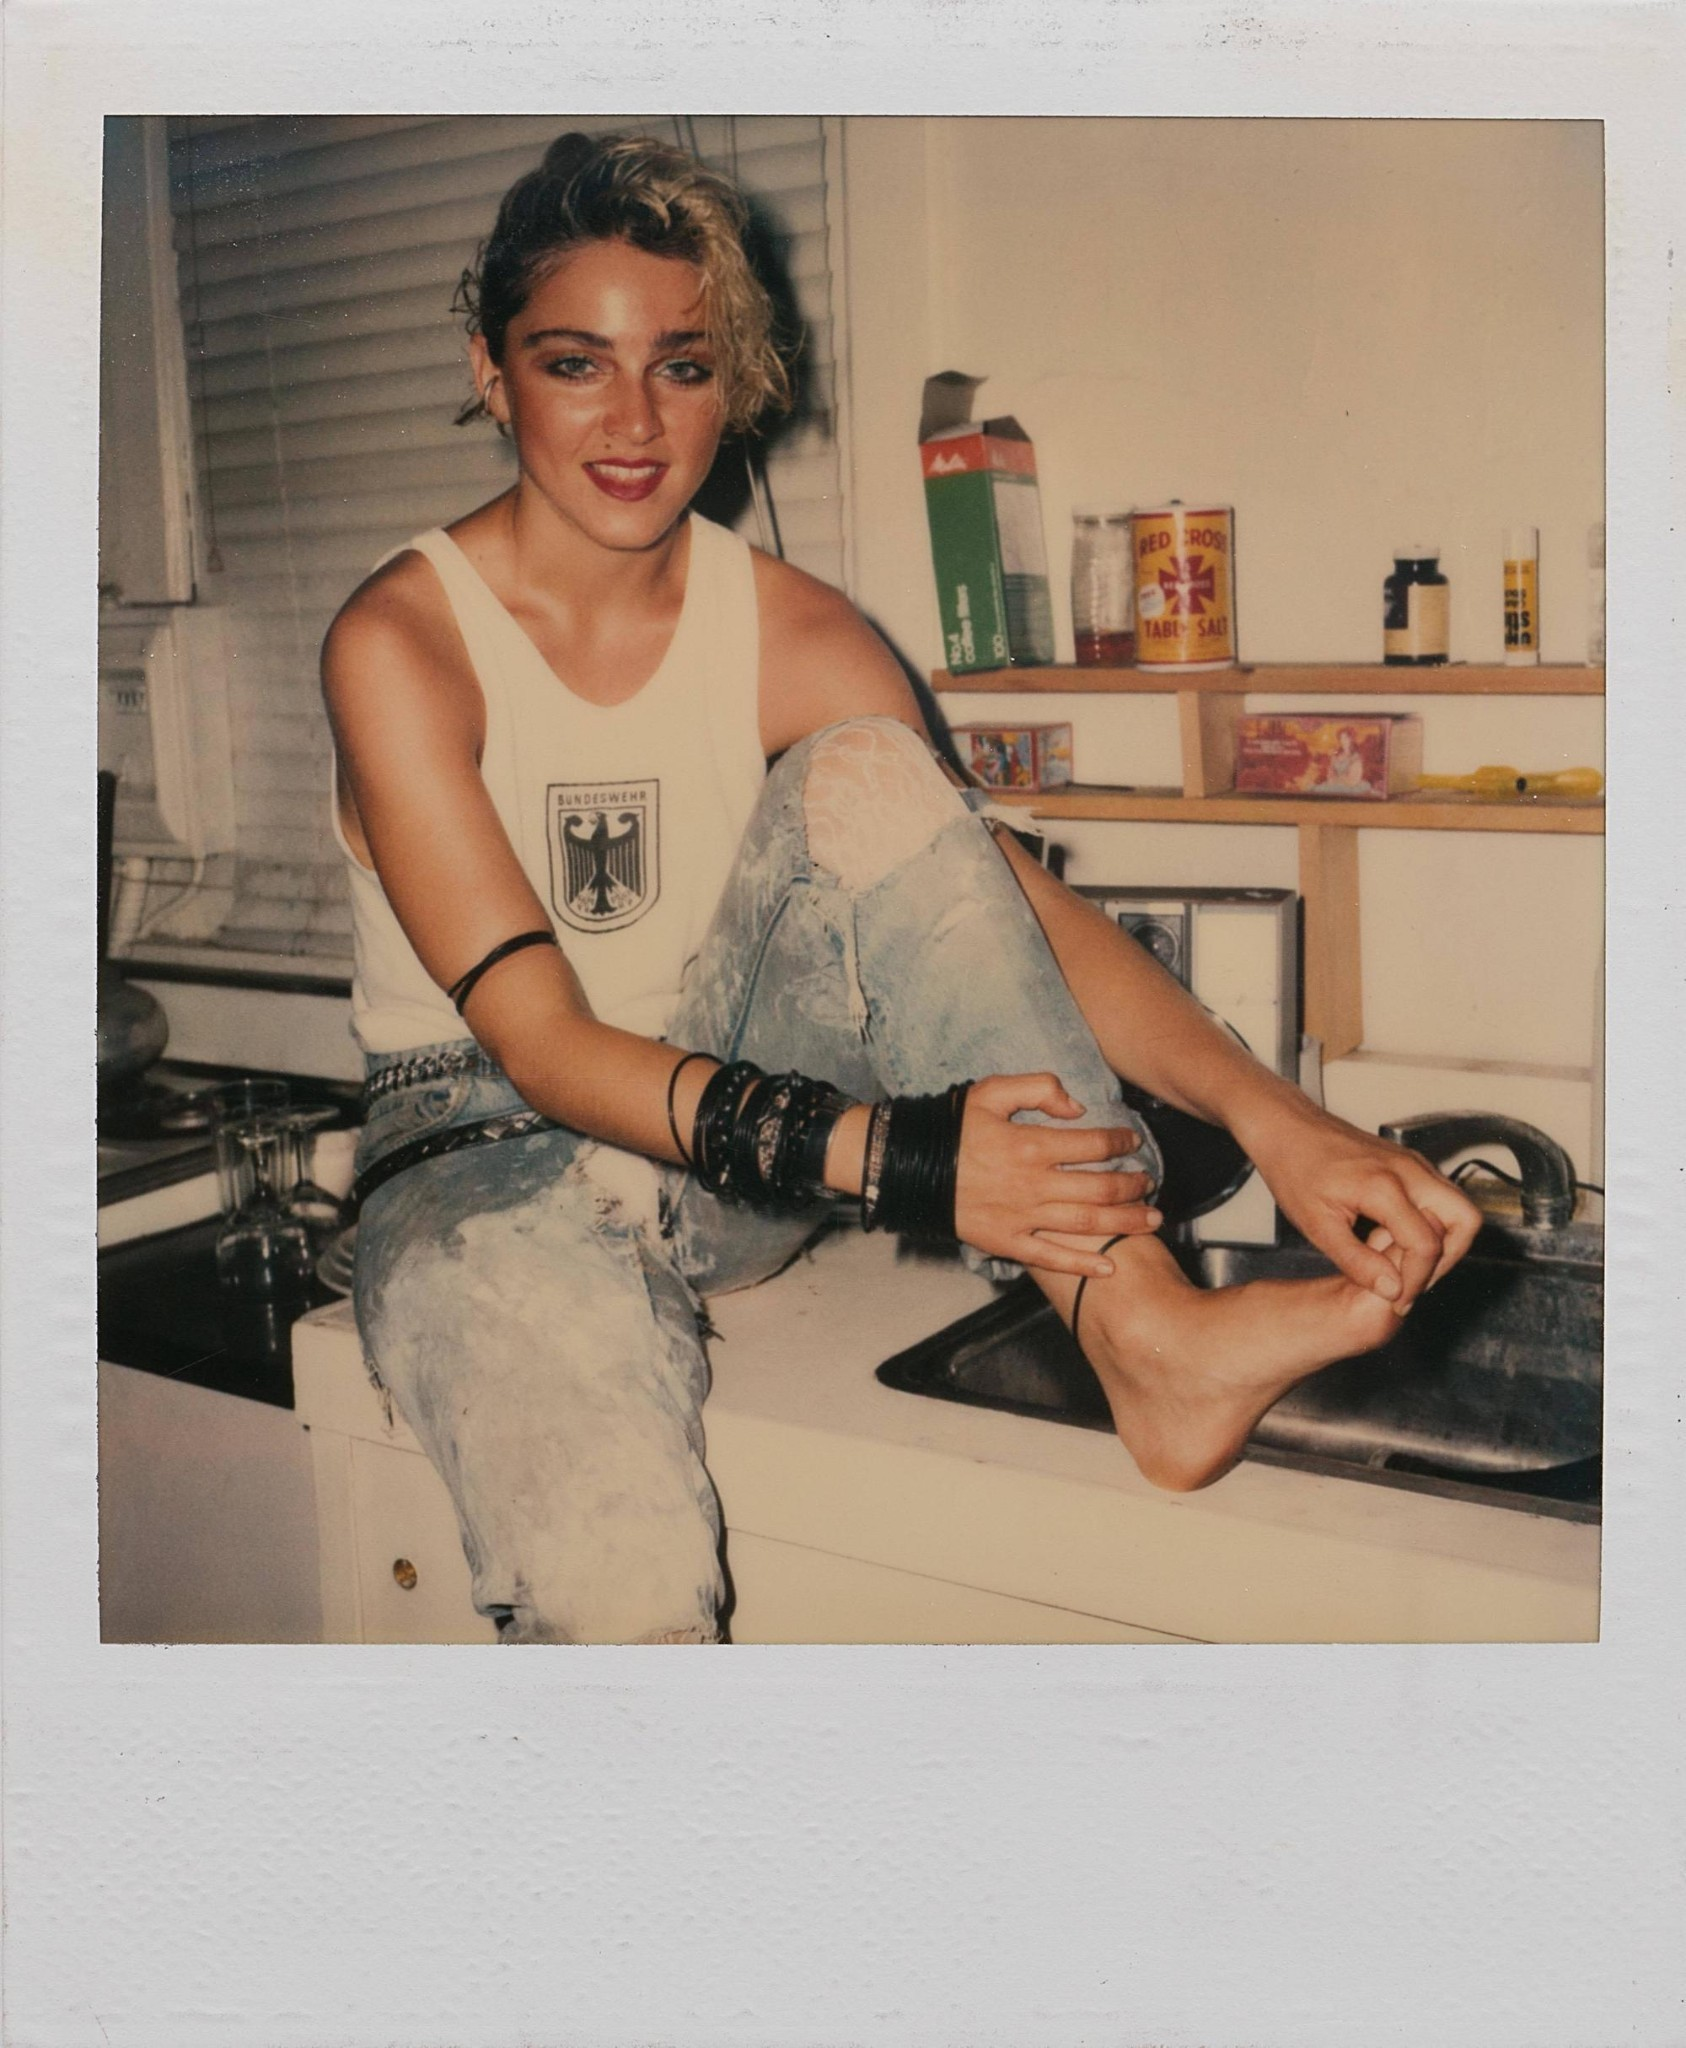 66 long-lost polaroids of madonna in '83 show a mega star on the verge - i-D